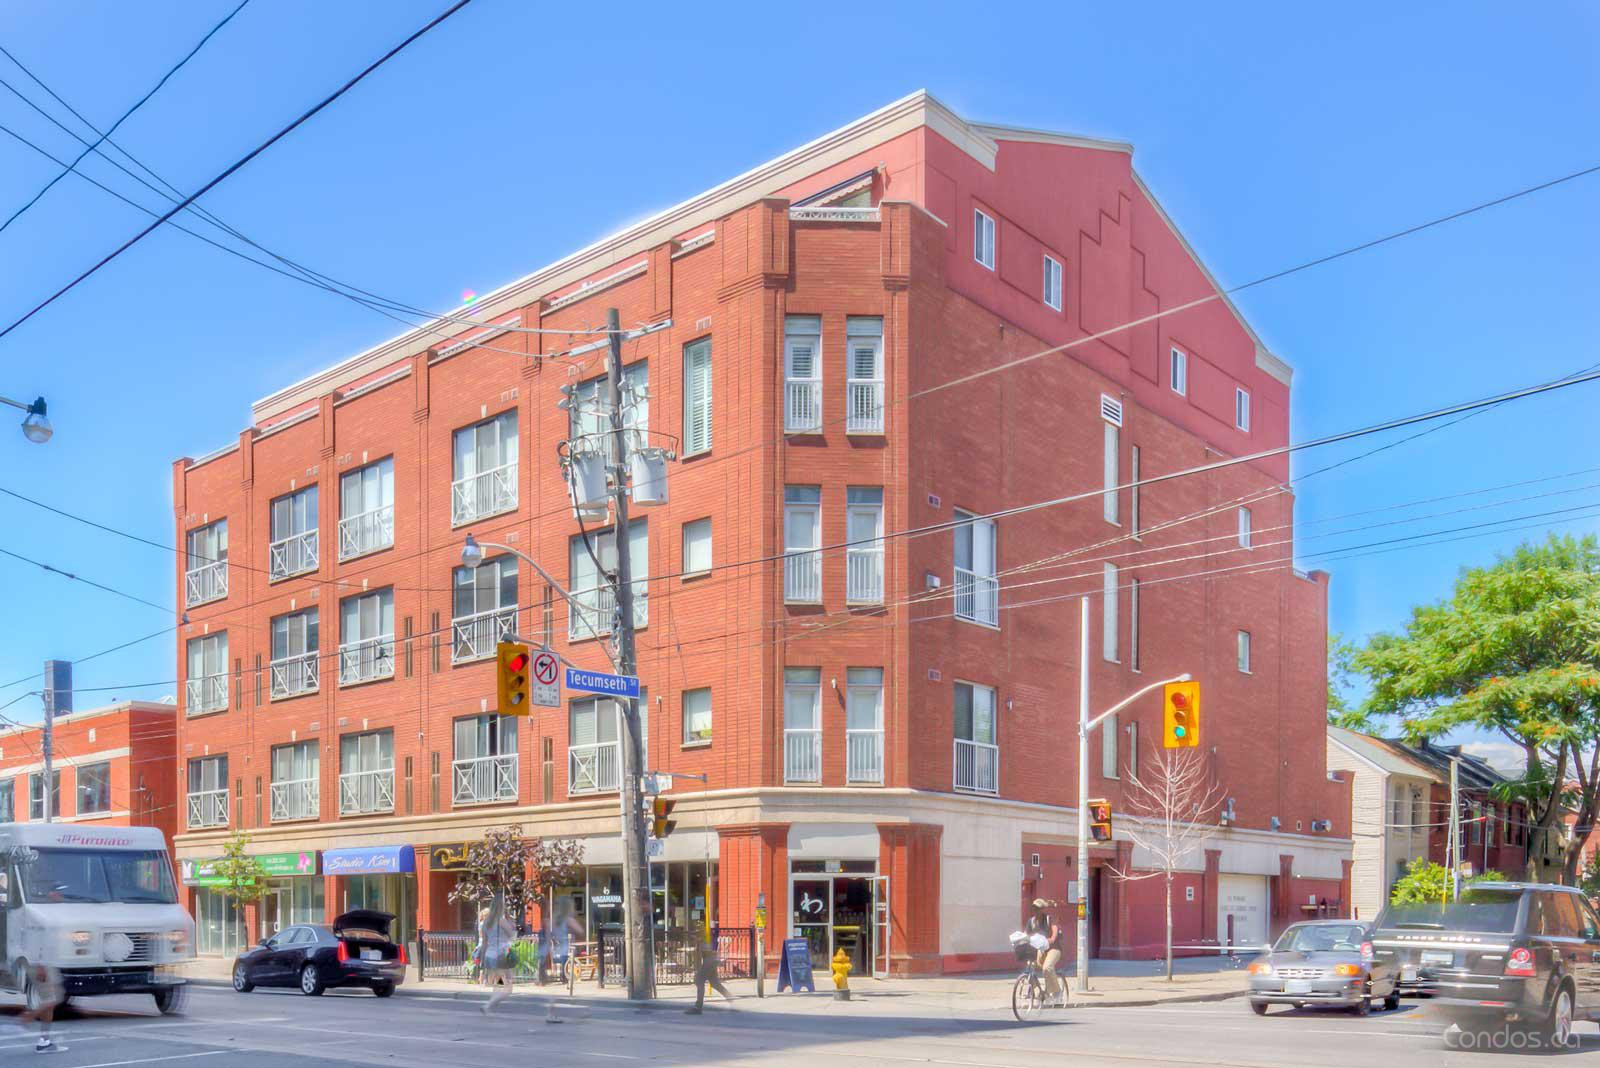 Tecumseth Lofts at 766 King St W, Toronto 1